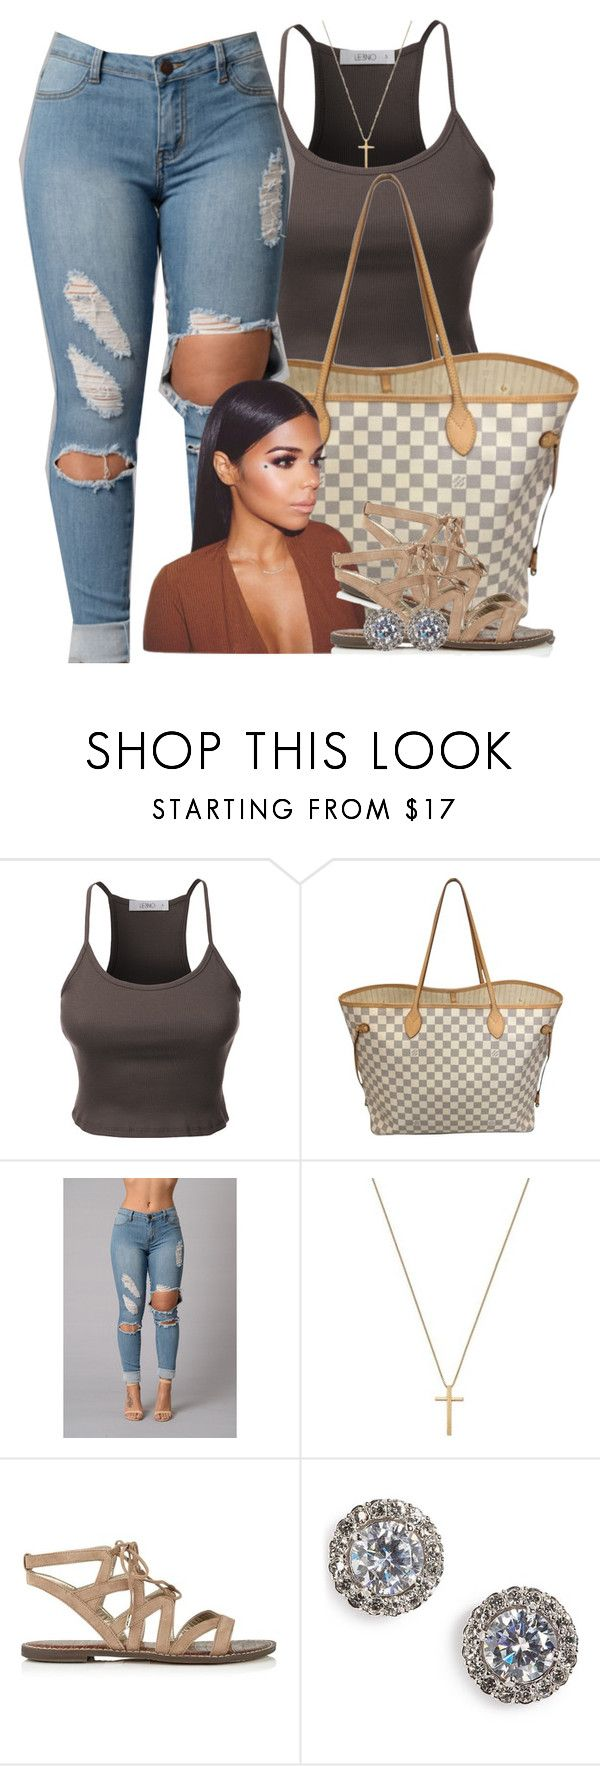 """""""Untitled #493"""" by princess-miyah ❤ liked on Polyvore featuring LE3NO, Louis Vuitton, Gucci, Sam Edelman and Nadri"""